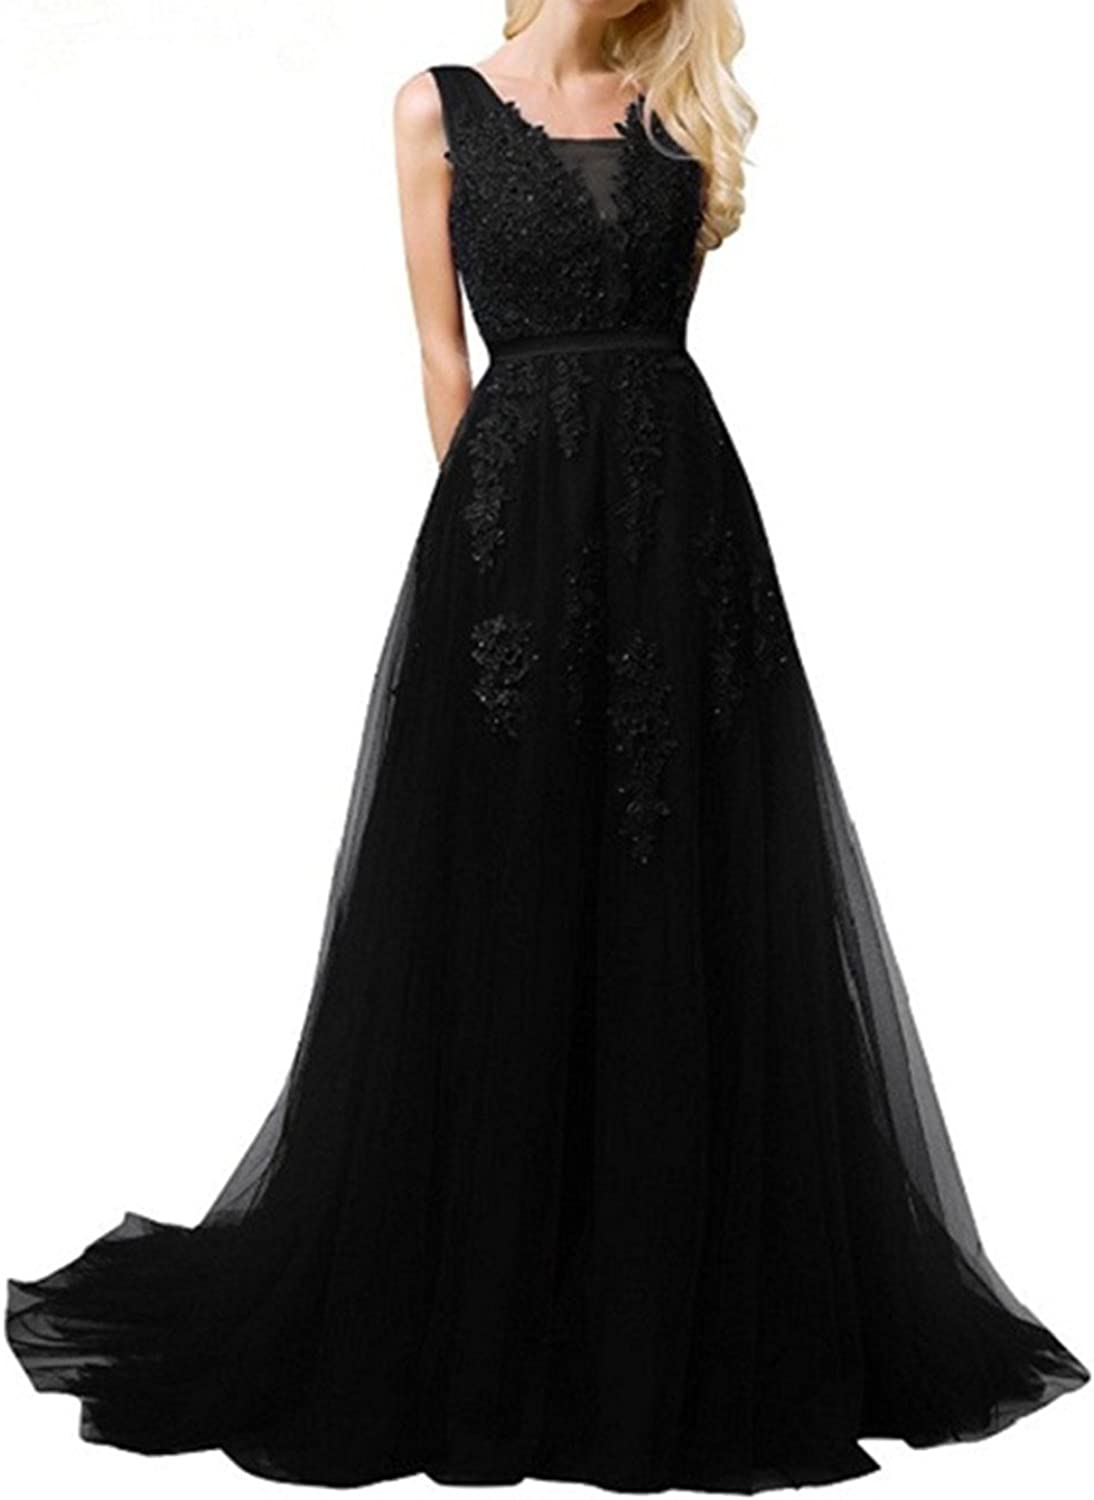 Liaoye Women's V Neck Lace Appliques Long Evening Dress Beaded Tulle Party Gown